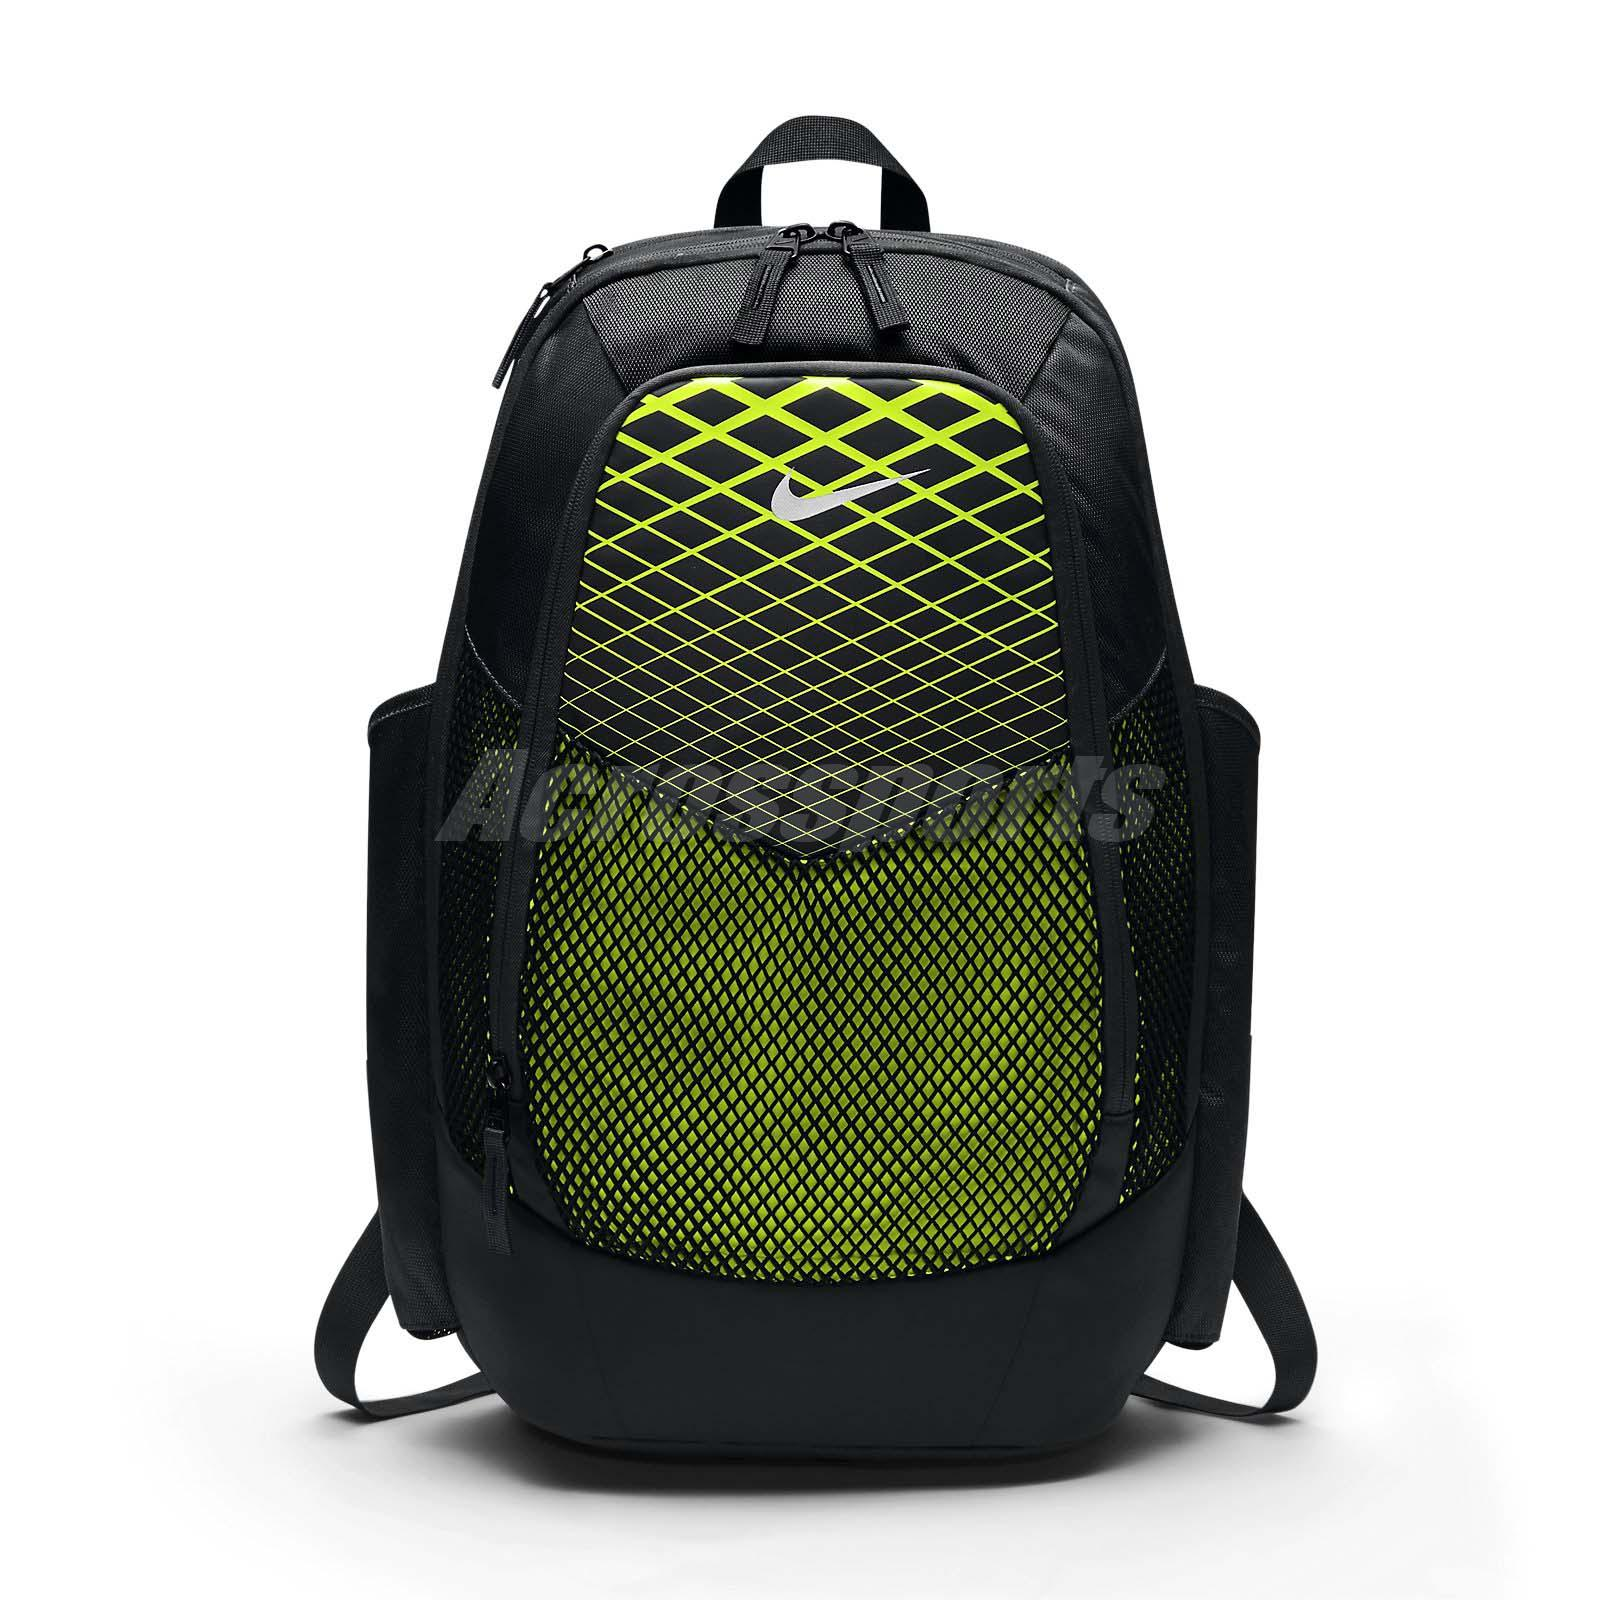 Nike Vapor Power Backpack Max Air Volt Black Sports Training Gym Bag  BA5479-010 f70e9ff848c26